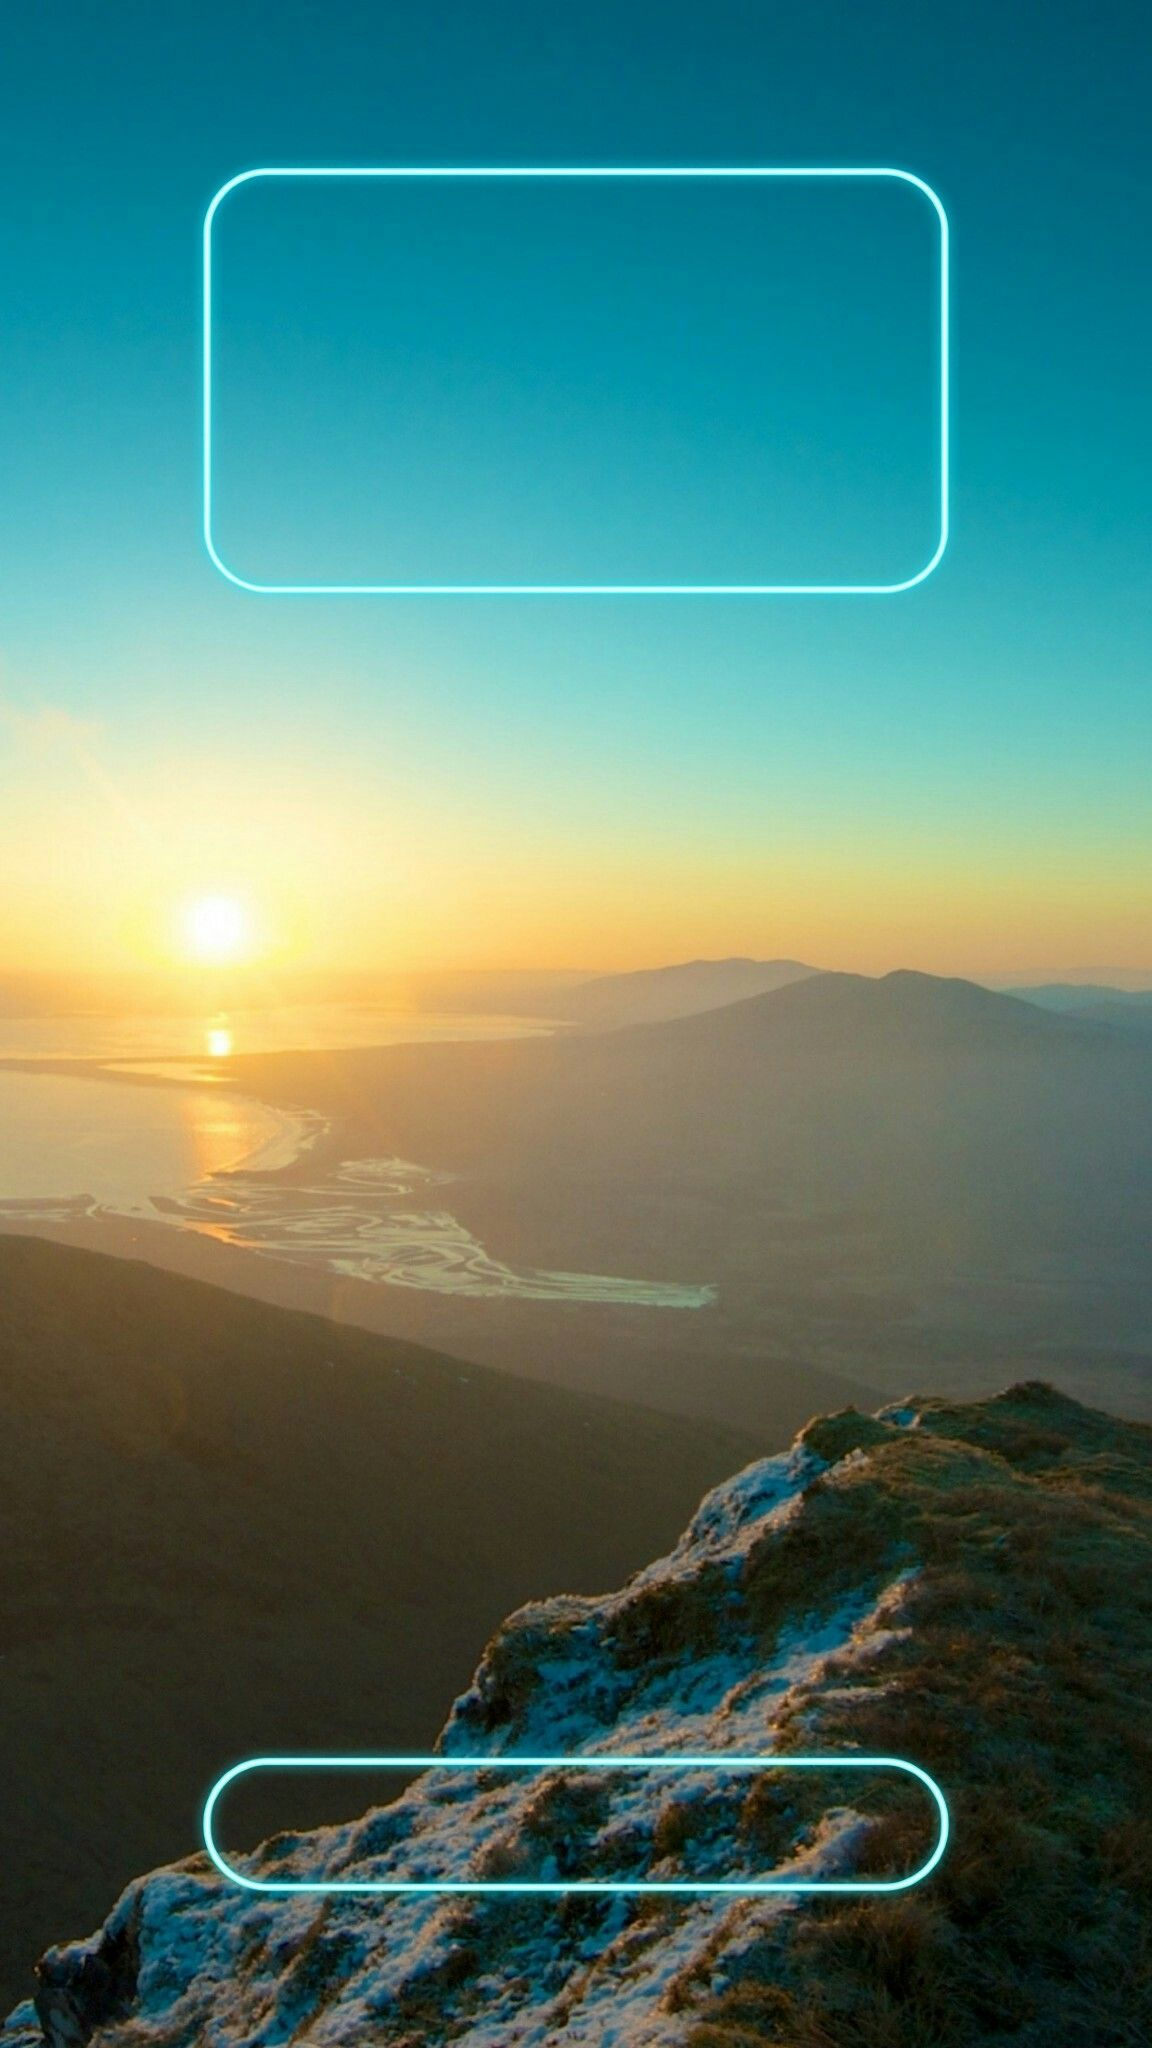 Moutain Peak Lockscreen Lock screen wallpaper iphone